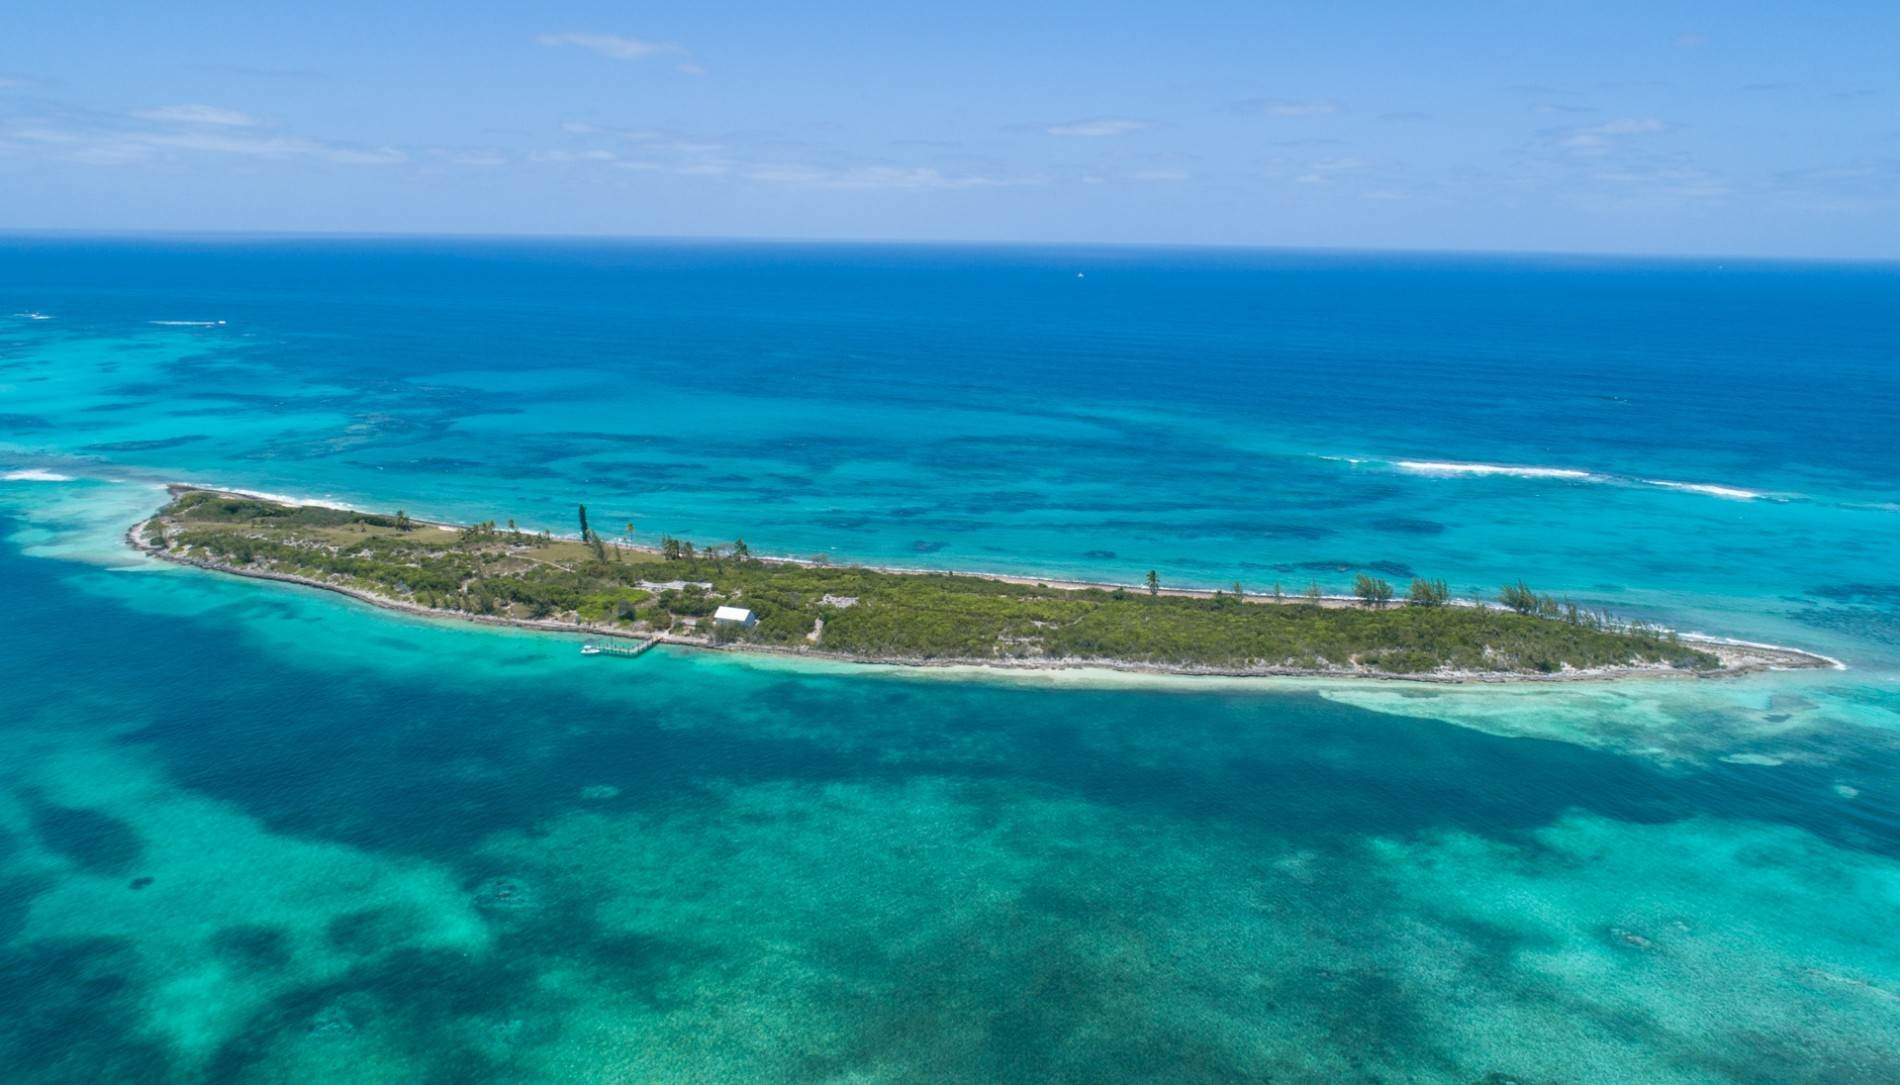 6. Private Islands for Sale at Pierre Island, A Perfect Private Retreat Island Near Harbour Island - MLS 40806 Harbour Island, Eleuthera, Bahamas